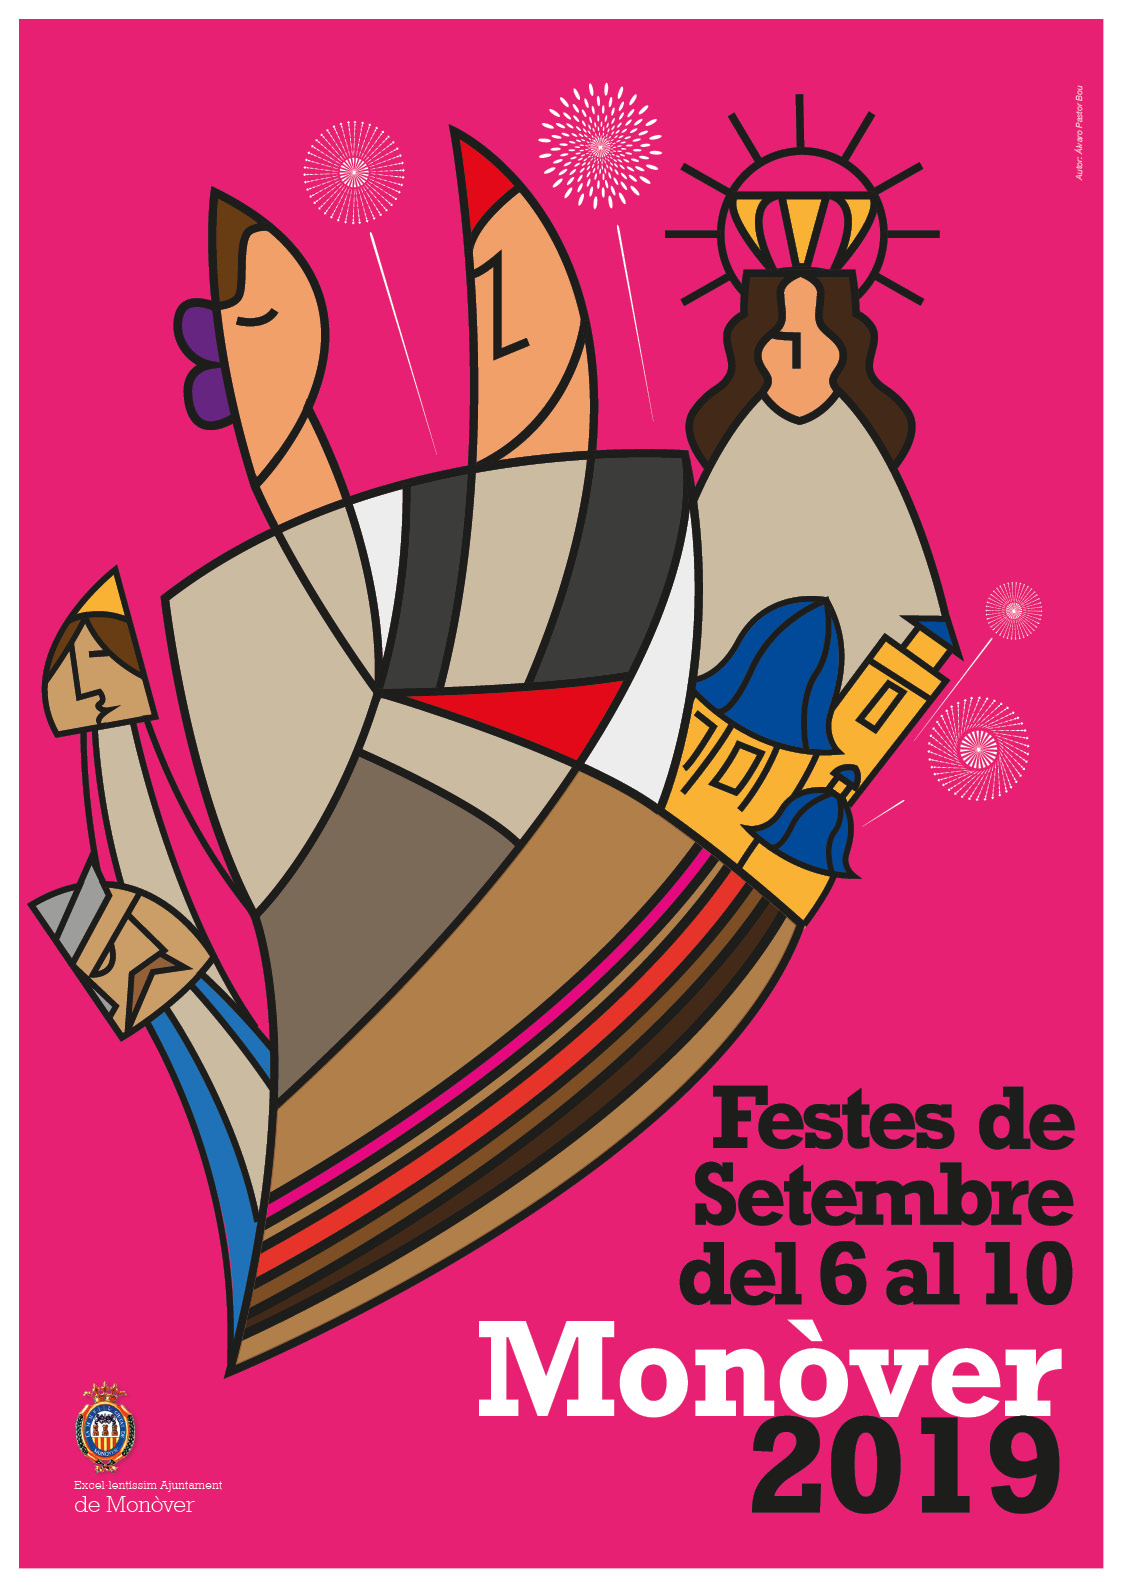 Fiestas Mayores en honor a la Virgen del Remedio